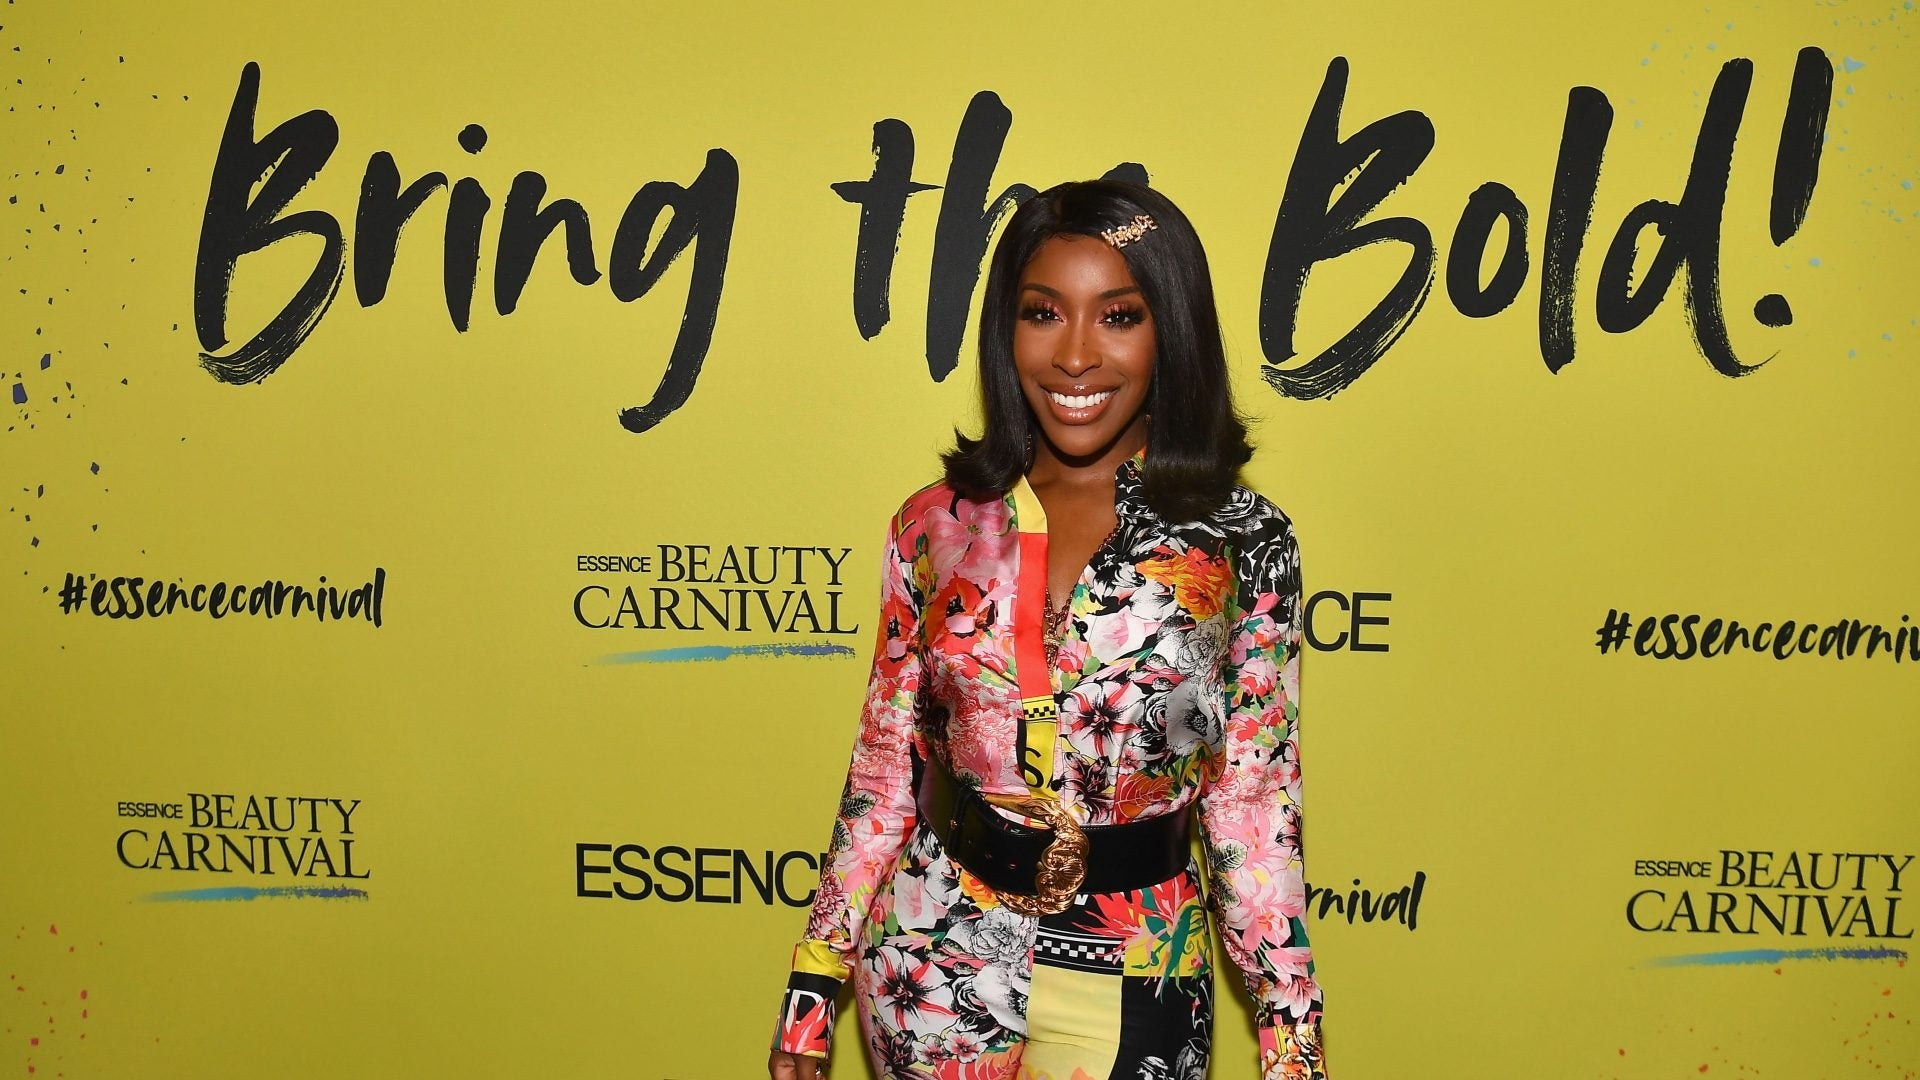 Jackie Aina Responds To Dist-urbing Comments About